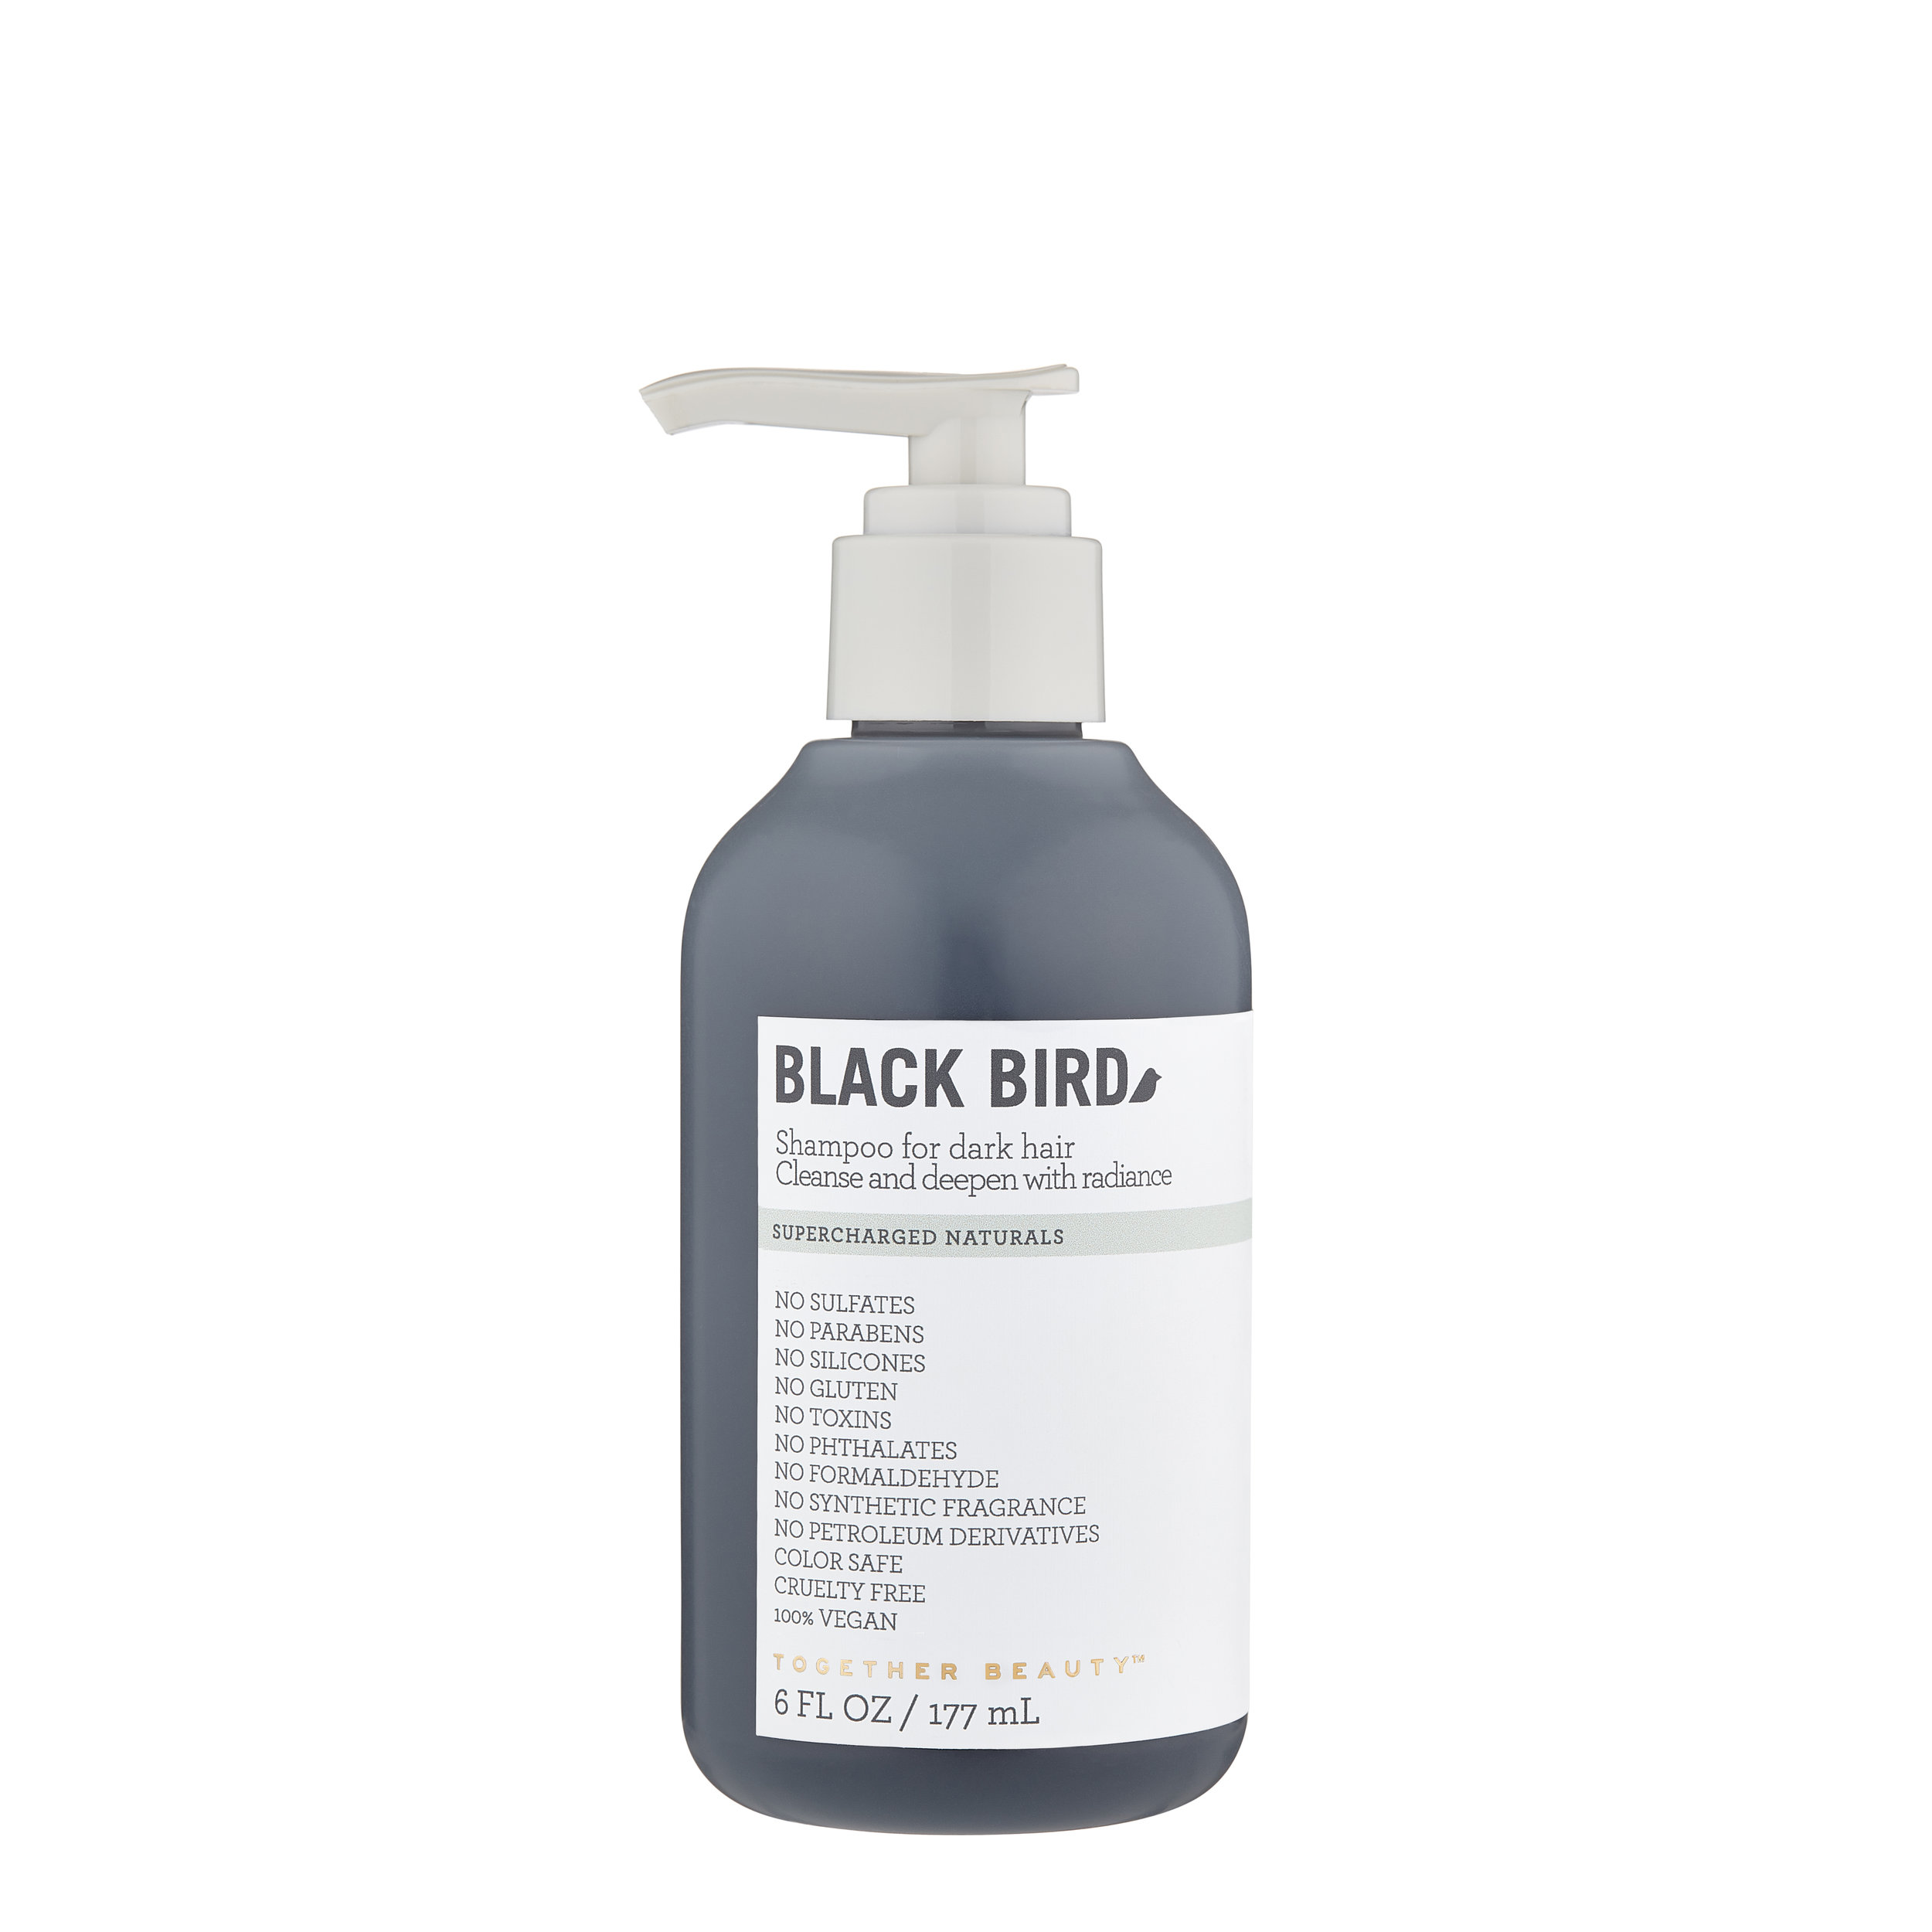 BLACK BIRD - Shampoo for dark hairCleanse and deepen with radiance